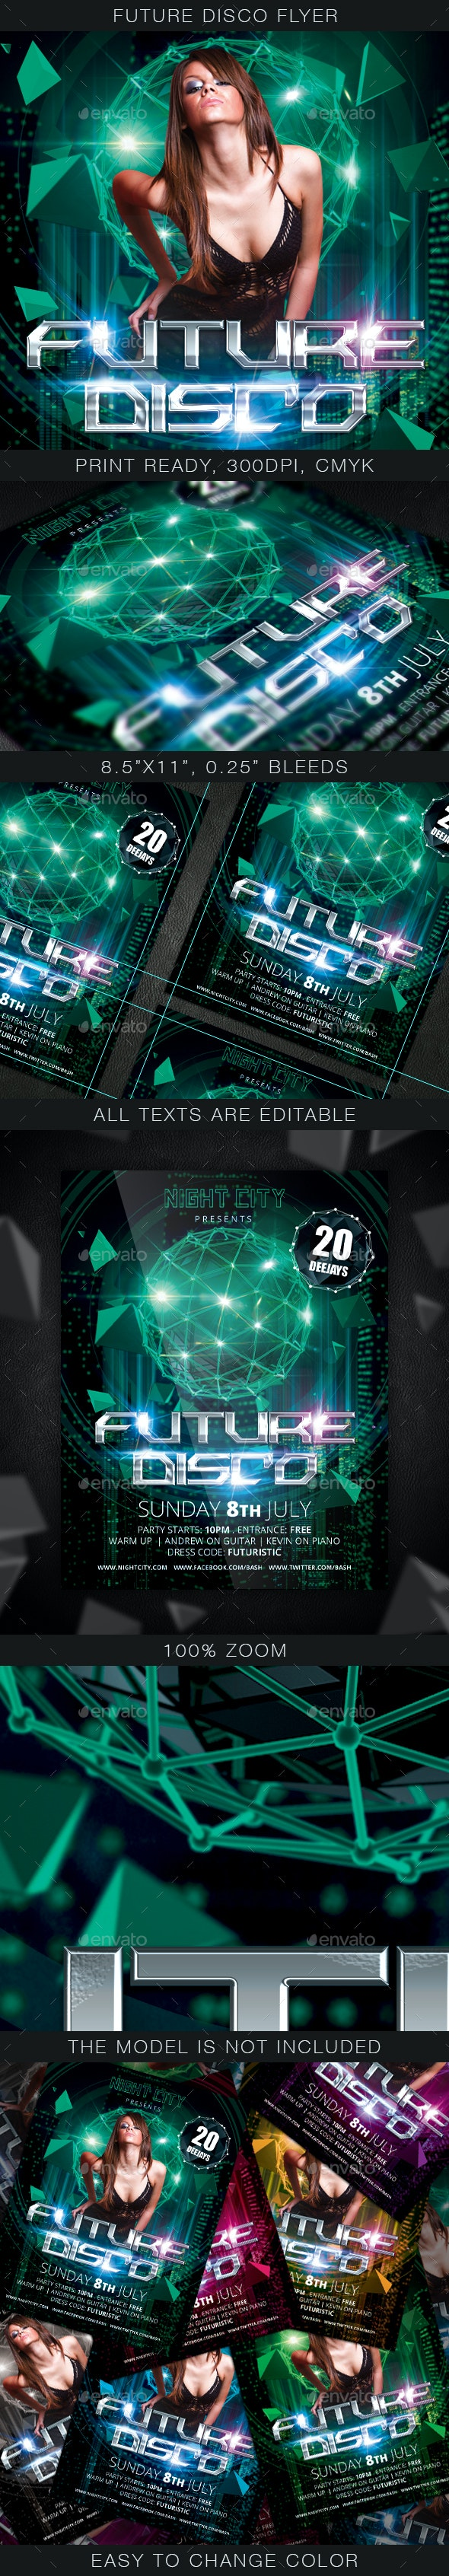 Future Disco Flyer - Clubs & Parties Events